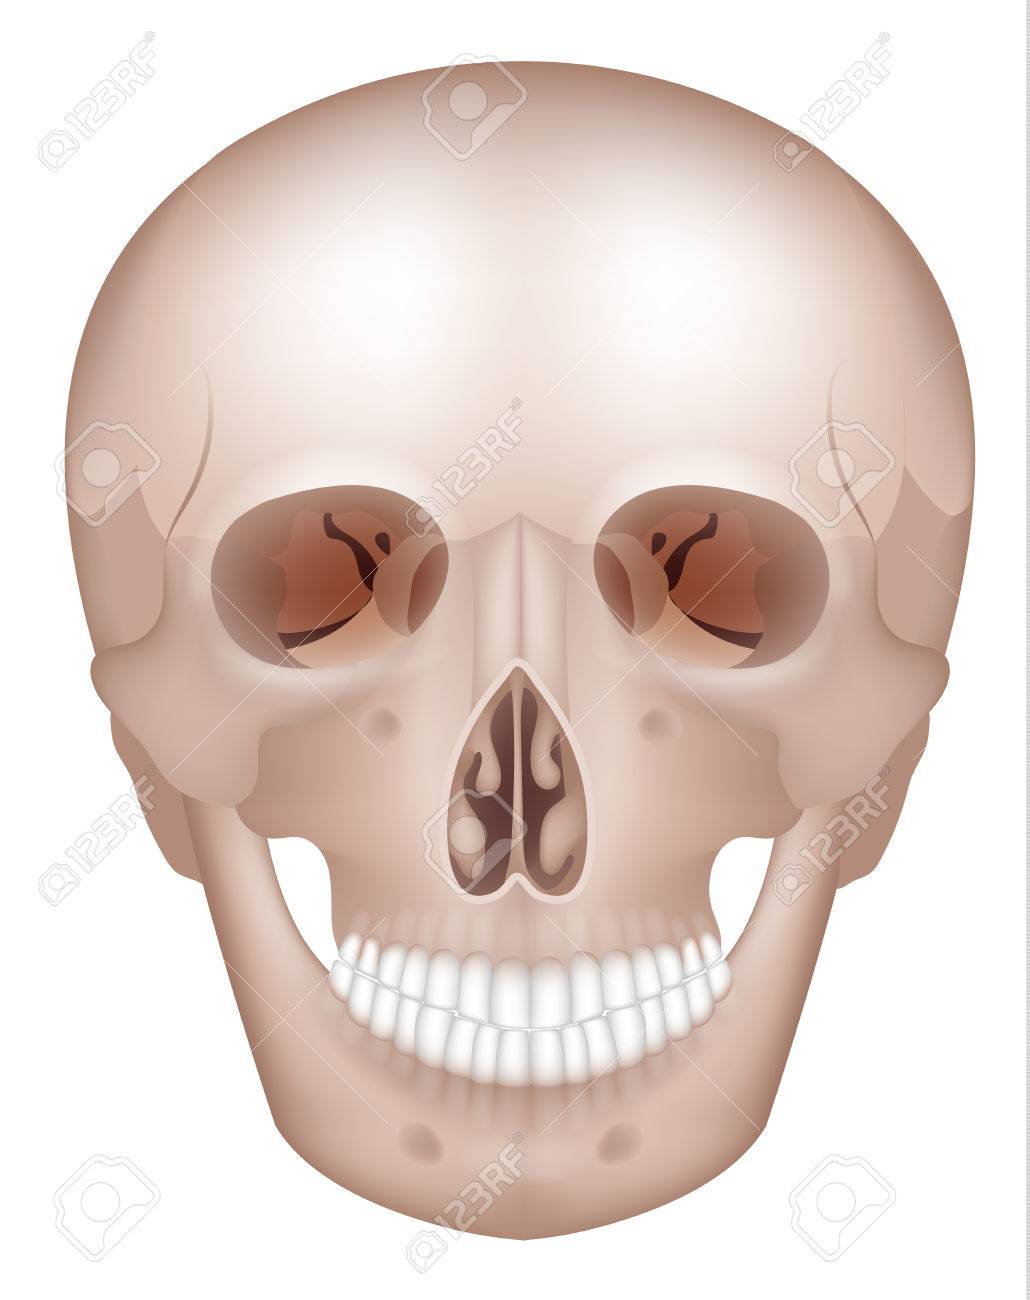 Human Skull Detailed Anatomy Frontal View Isolated On White Royalty